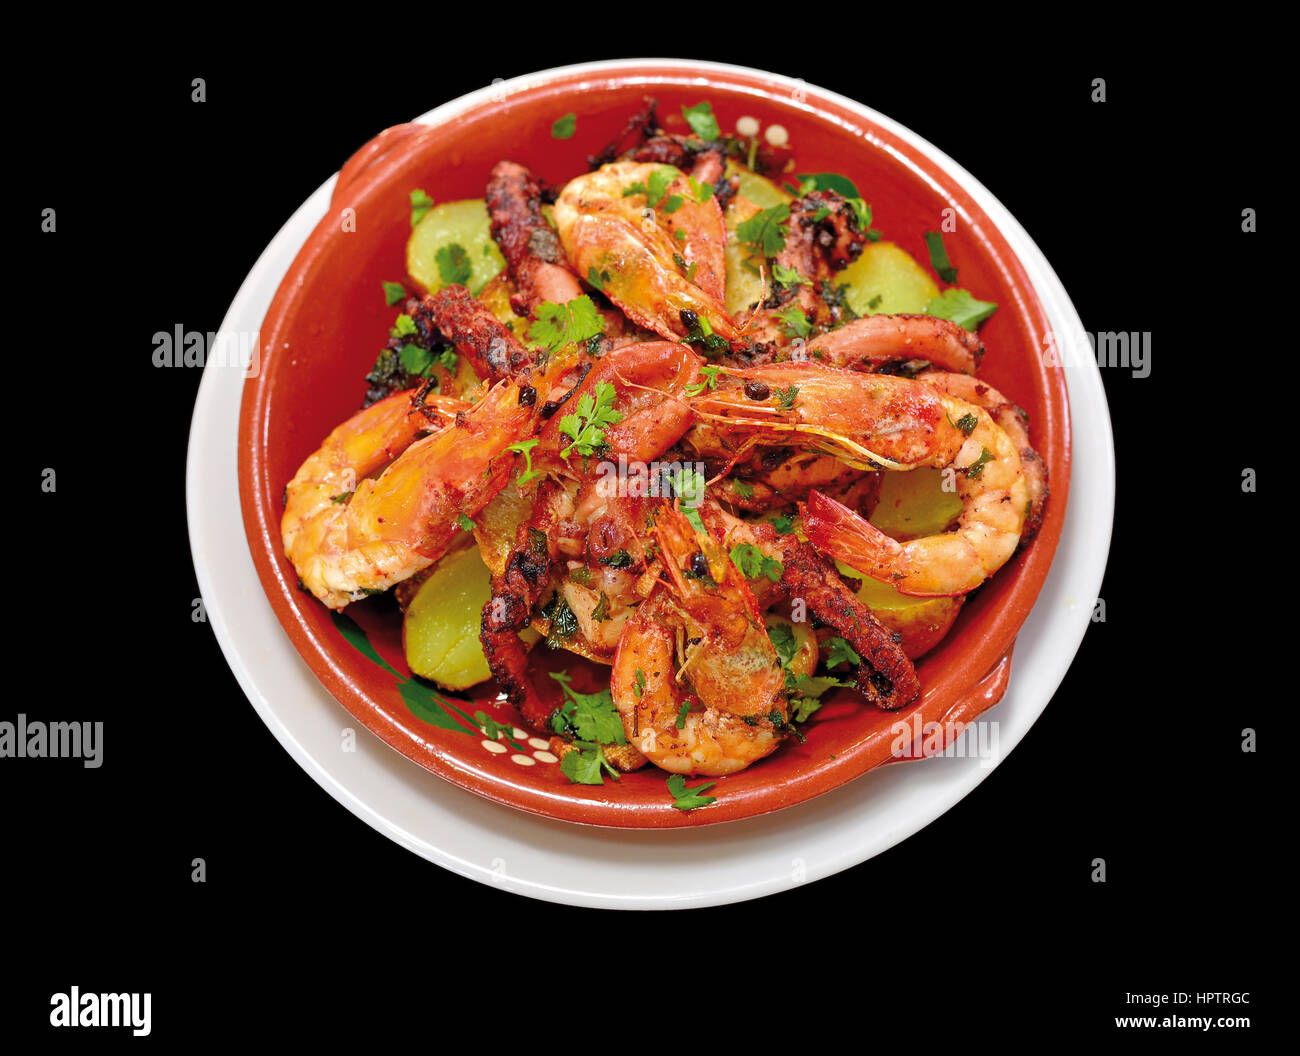 Close up of a octopus and shrimp dish in a teracotta plate with black background - Stock Image